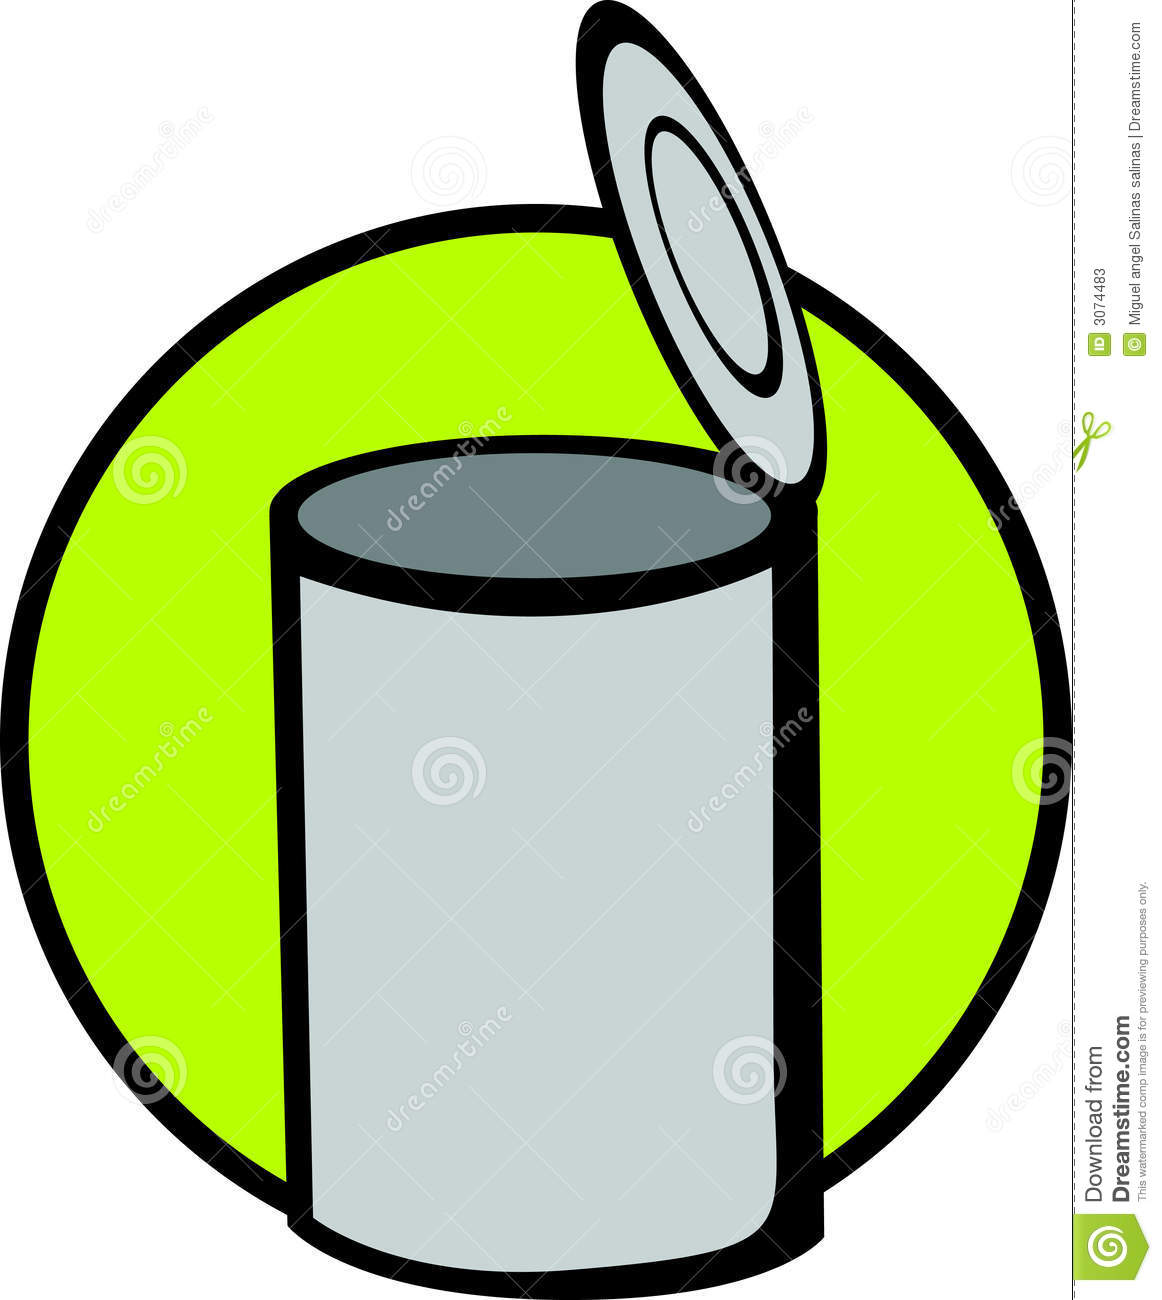 Canned Food Clipart   Clipart Panda   Free Clipart Images